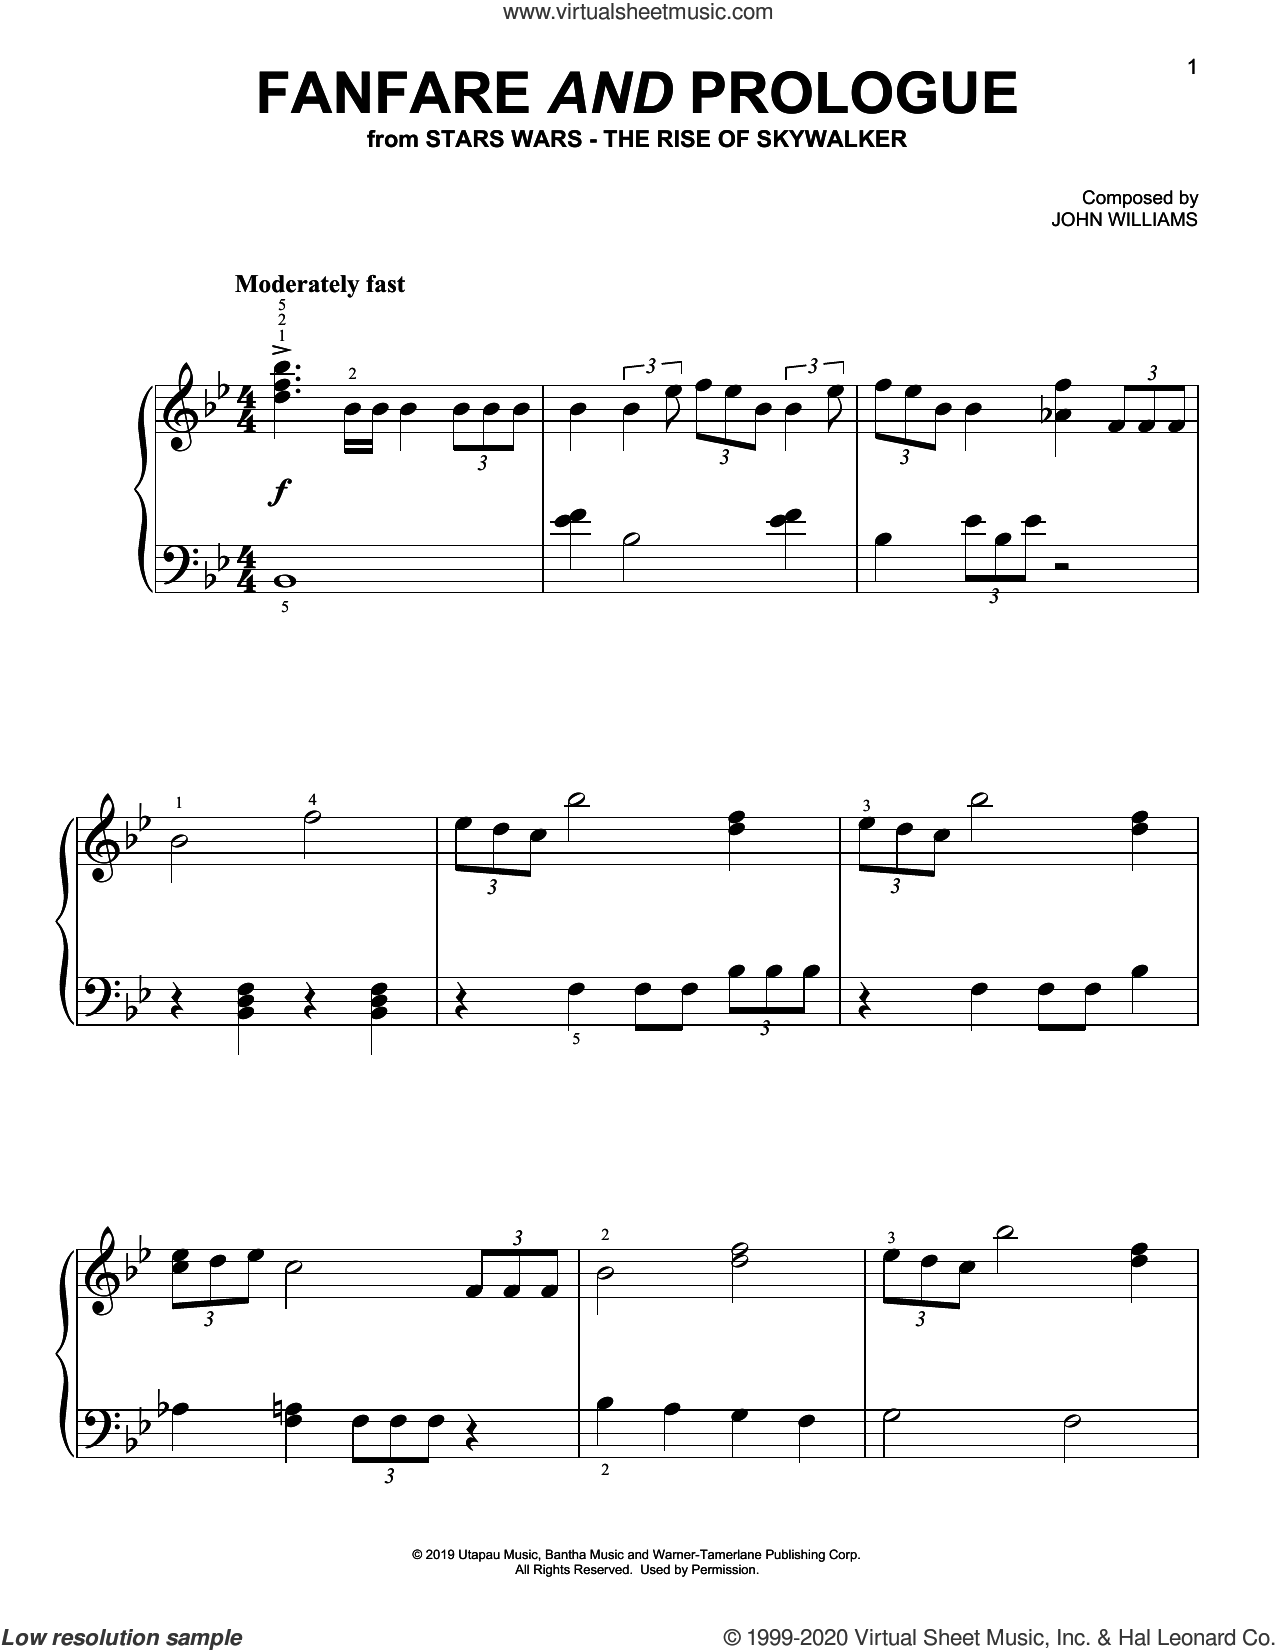 Fanfare And Prologue (from The Rise Of Skywalker) sheet music for piano solo by John Williams, easy skill level